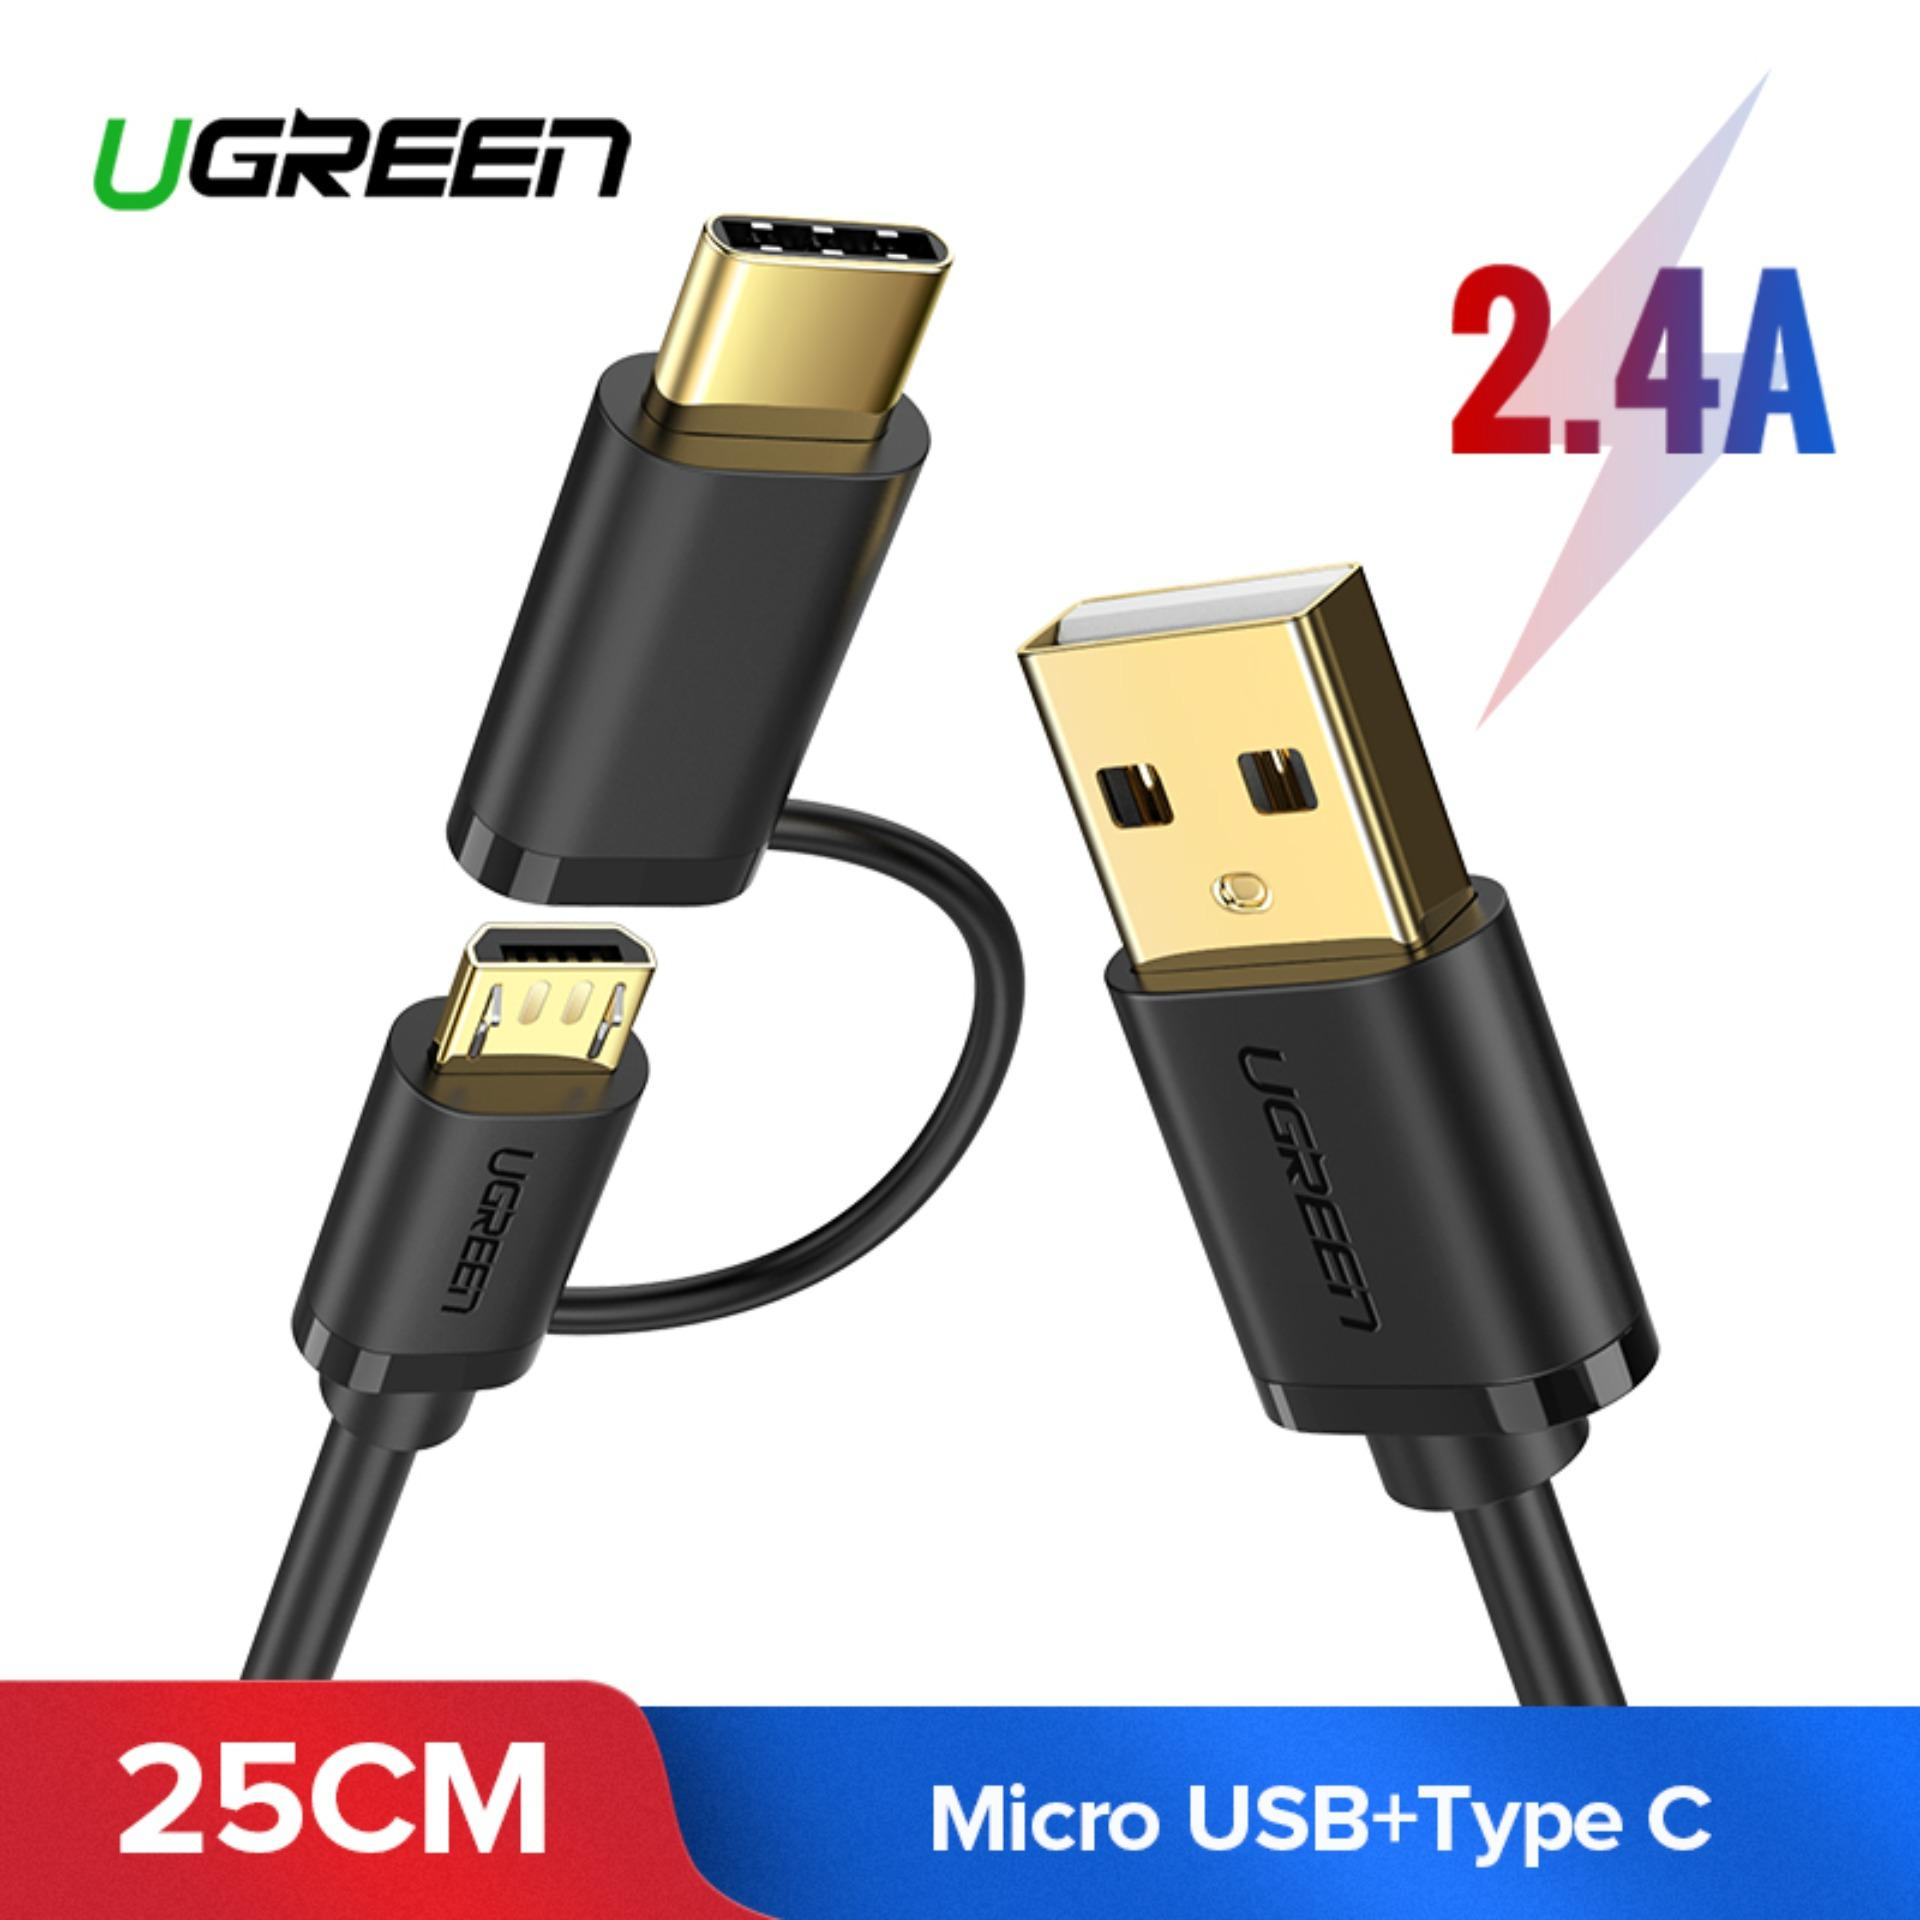 UGREEN 0.25Meter 2 in 1 Micro USB and USB Type C Fast Charging Cable for Huawei Nova /Xiaomi A1/A2/Mi 6/Mi 8/Pocophone f1/One Plus/Asus/Samsung Phone-Intl